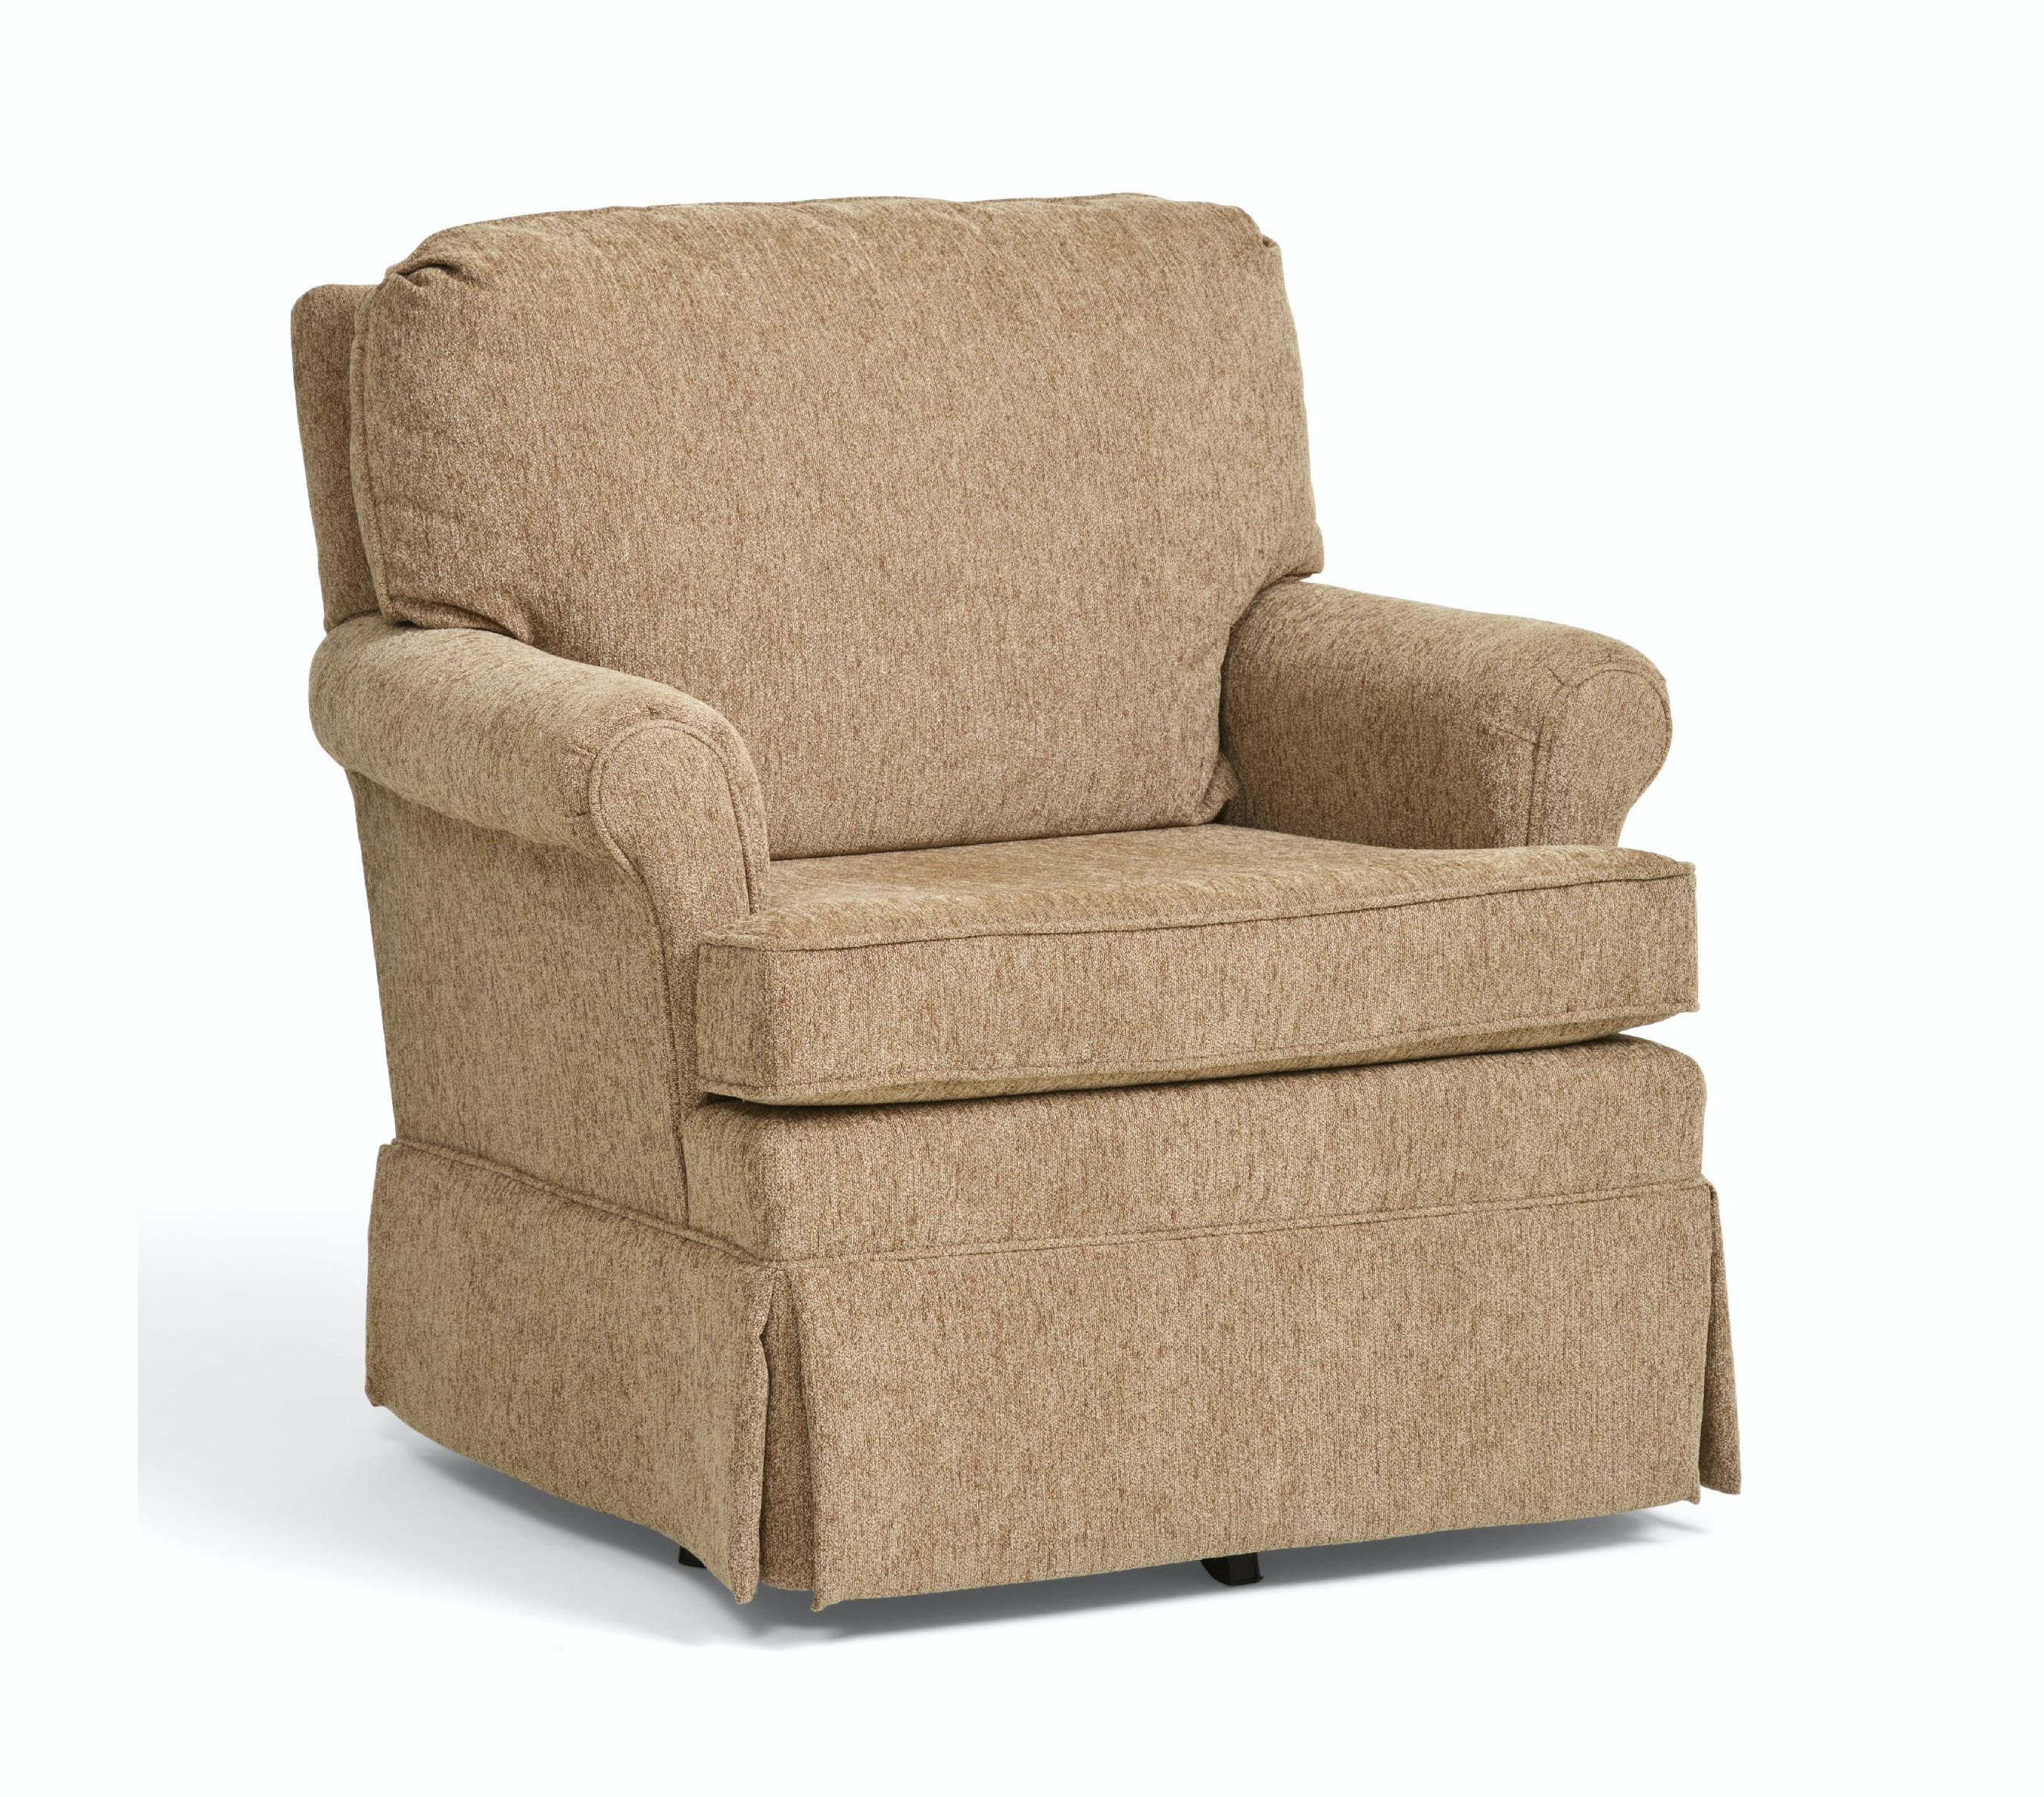 Living Room Bruno Swivel Rocking Chair